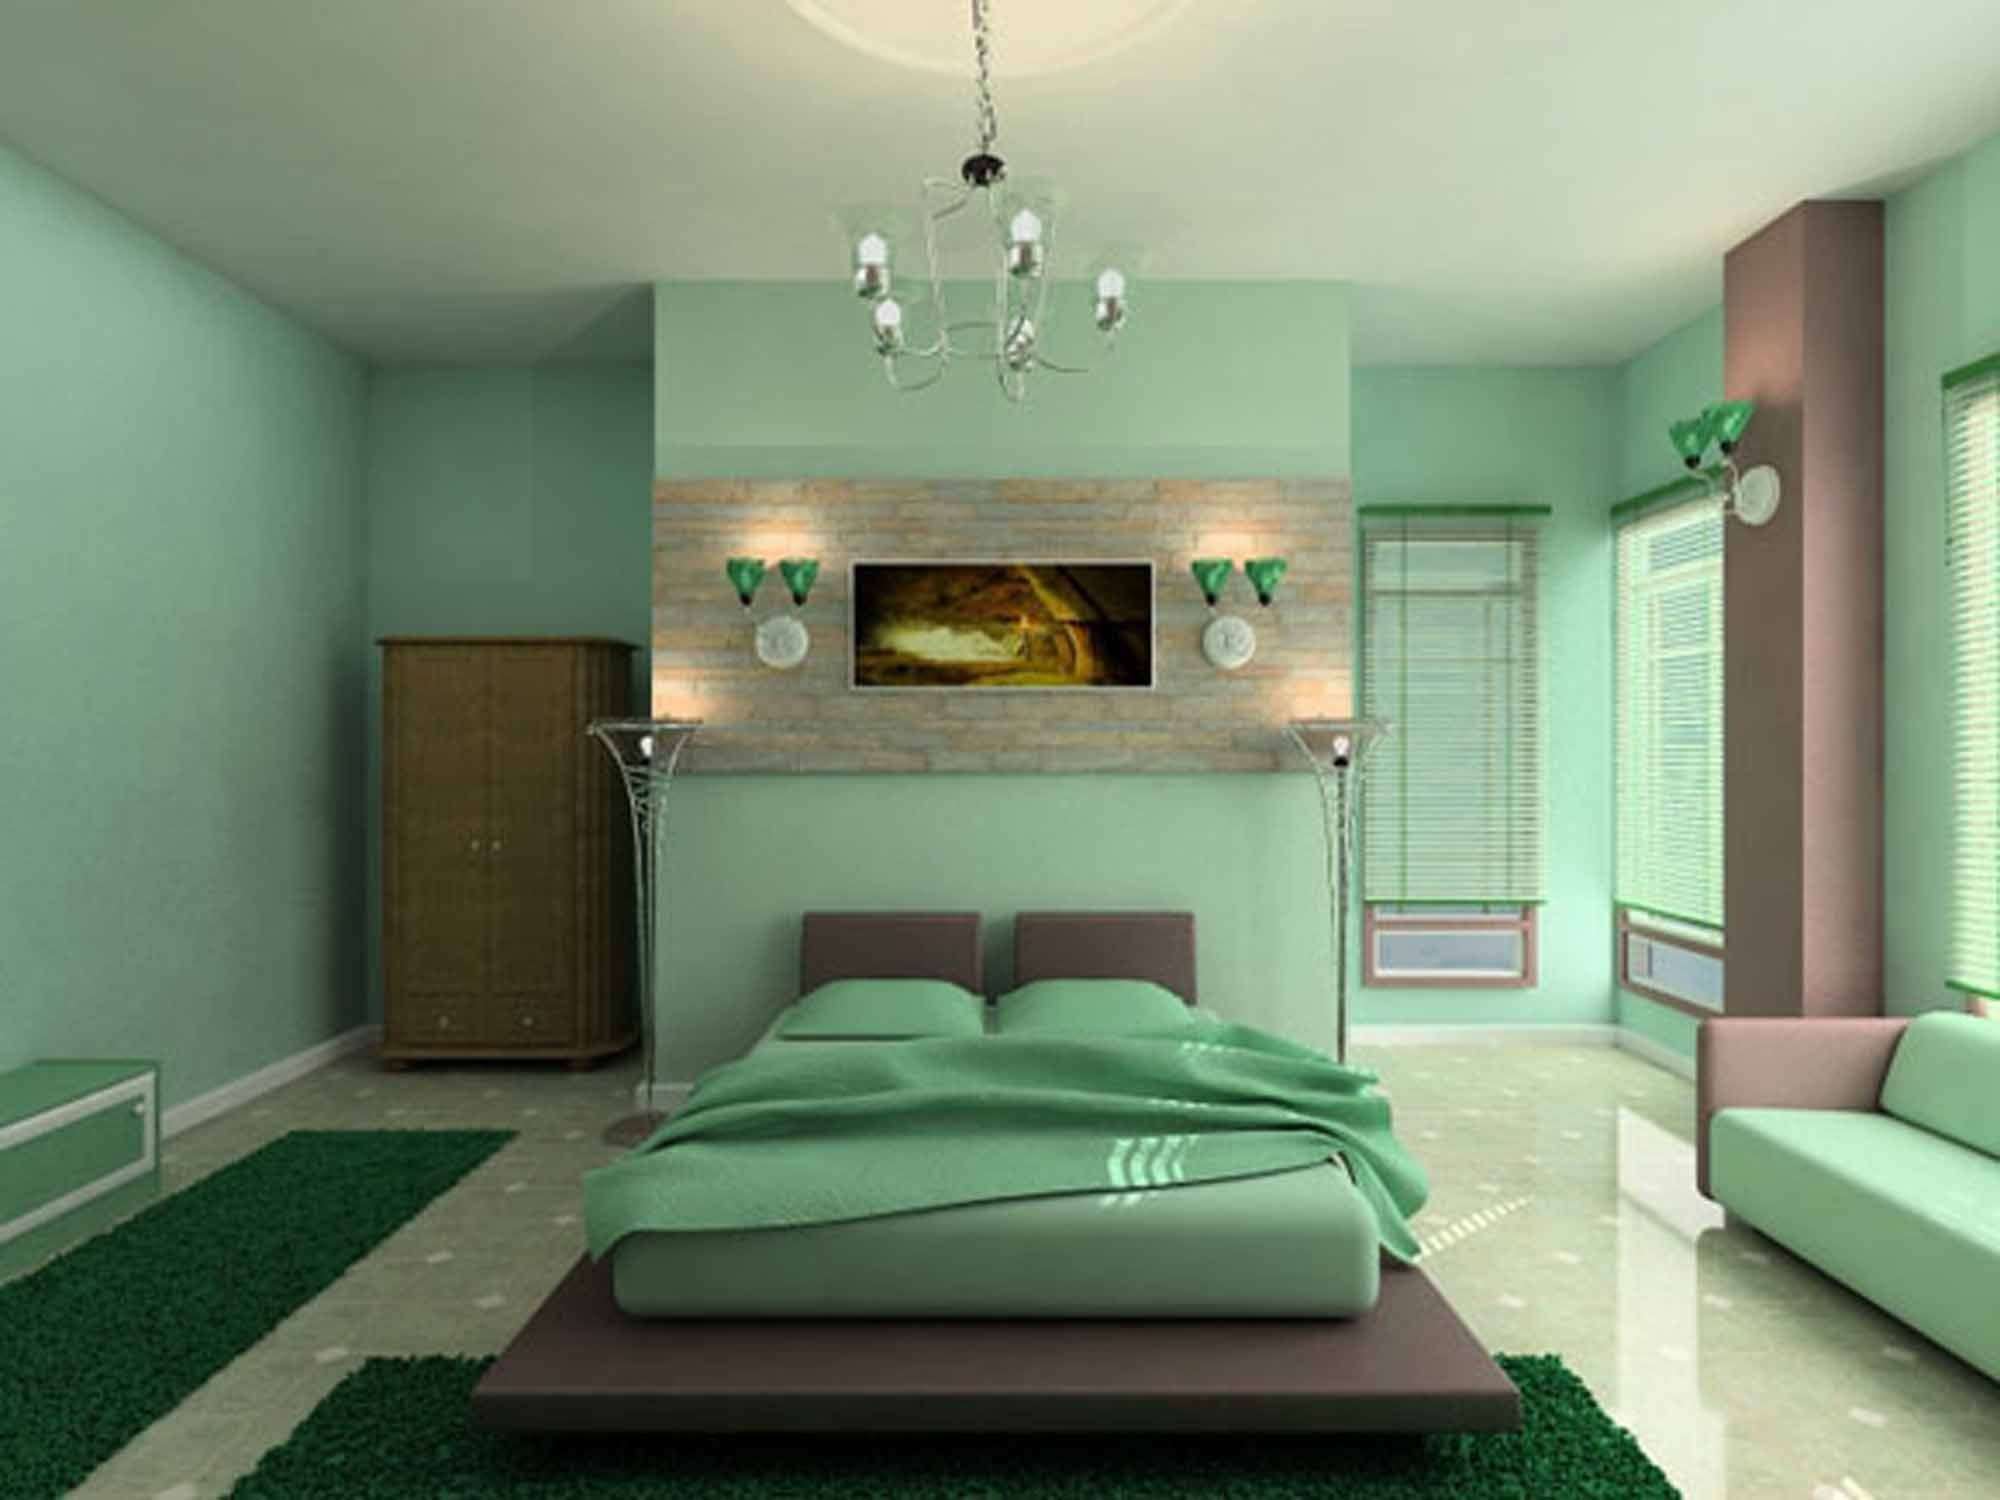 Bedroom Bedroom Decorating Ideas Light Green Walls Mint Green And Brown Living Room 2000x1500 Wallpaper Teahub Io